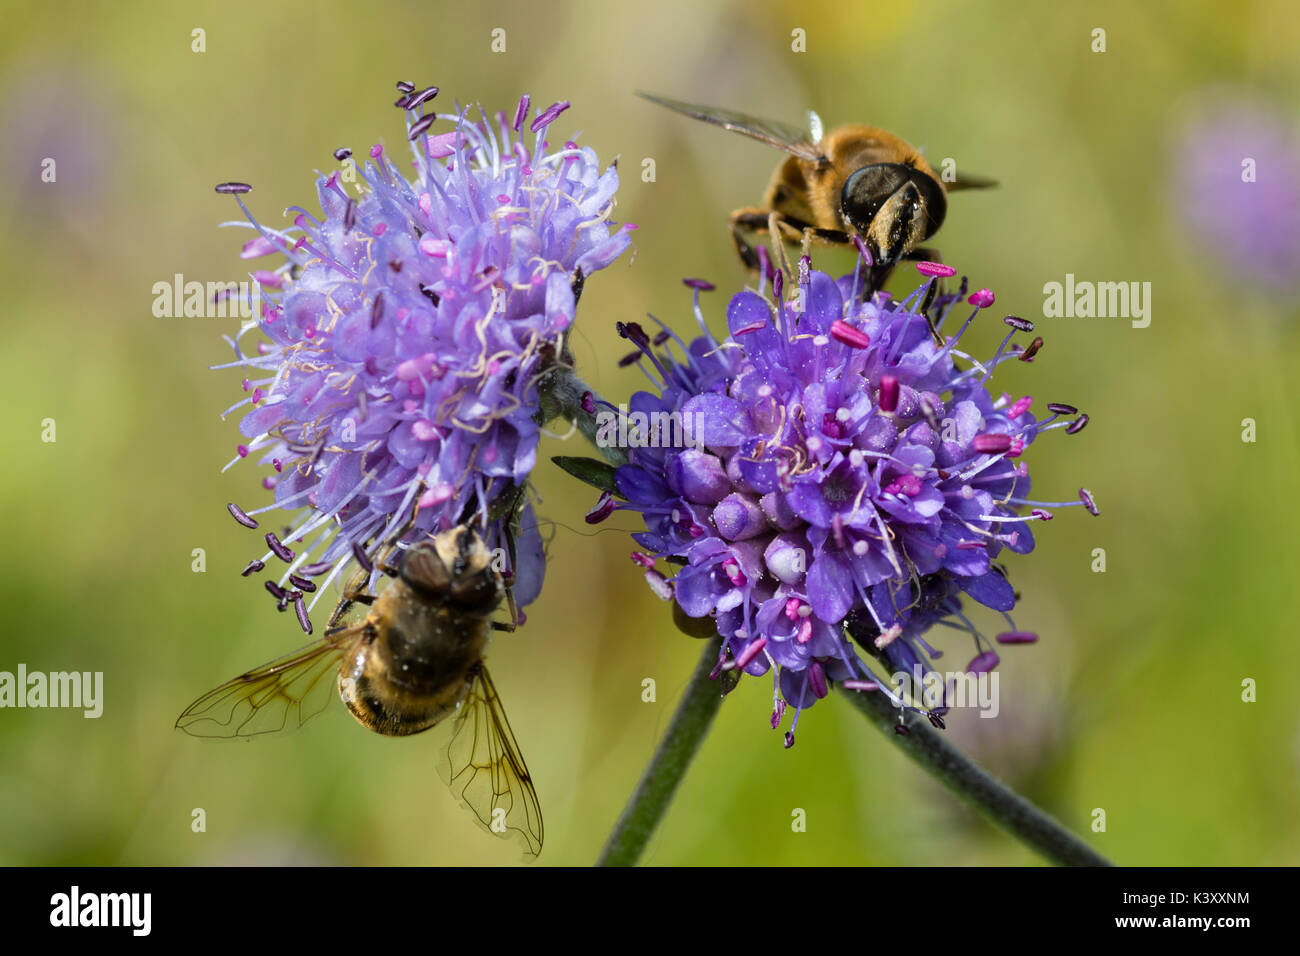 Pincushion blue flower heads of the UK wildflower Devil's bit scabious, Succisa pratensis, with Eristalis pertinax hoverflies feeding - Stock Image